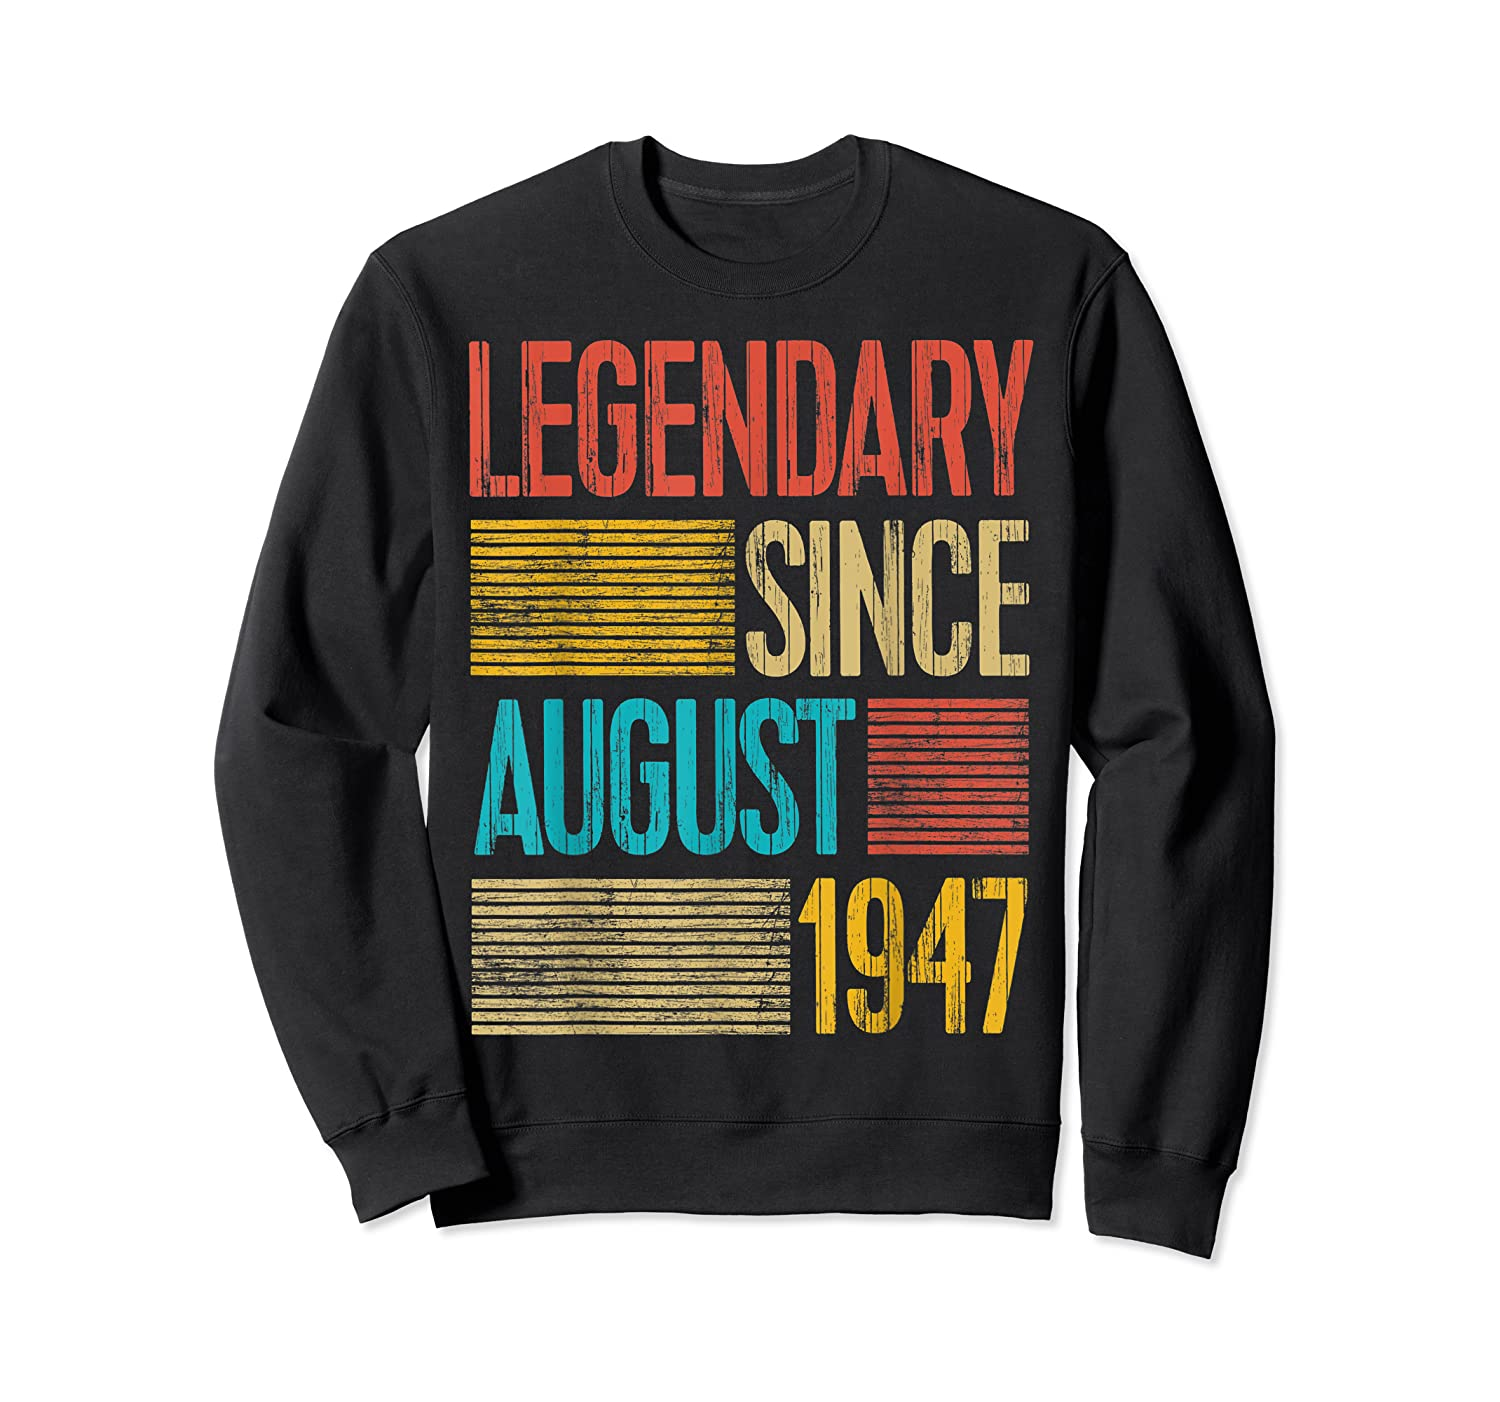 72nd Birthday Gifts Legendary Since August 1947 Shirts Crewneck Sweater